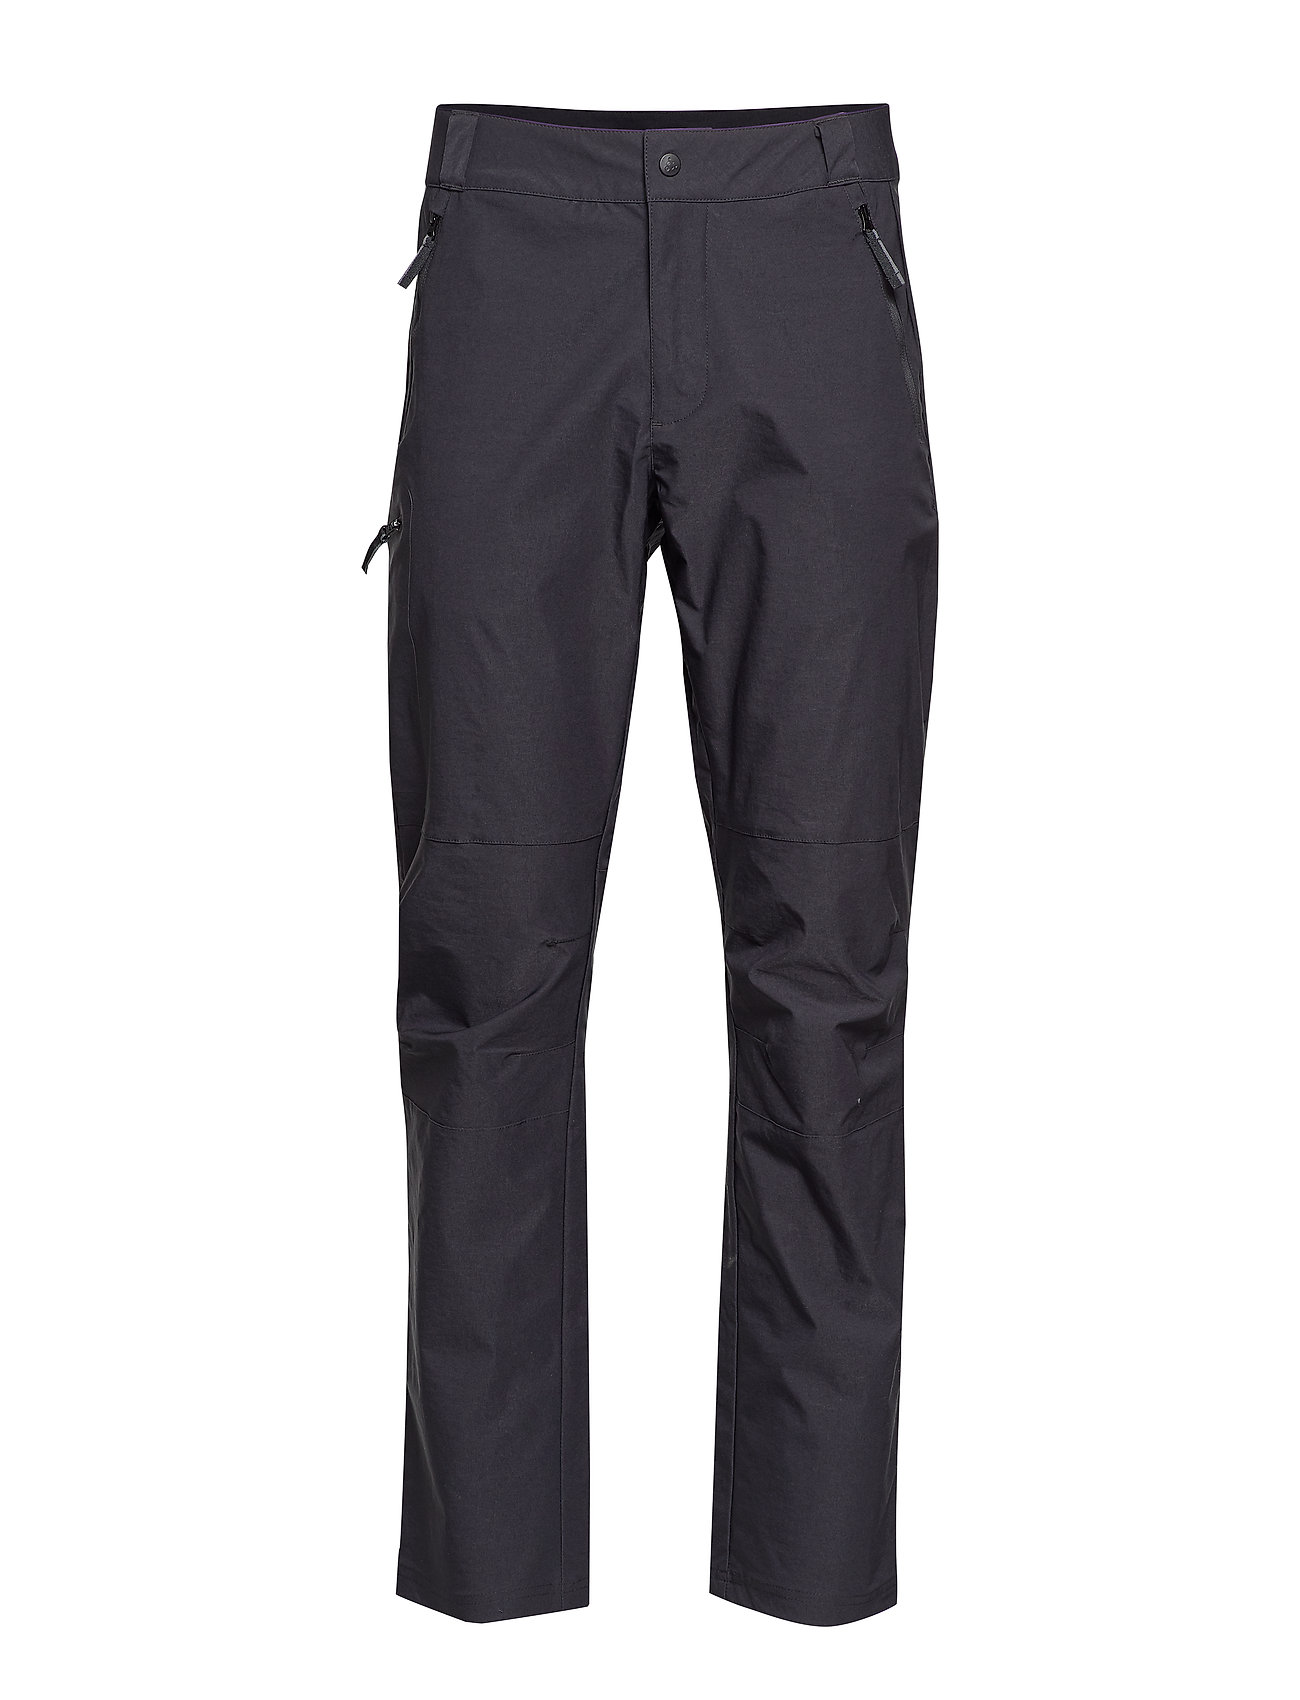 Craft CASUAL SPORTS PANTS M - BLACK